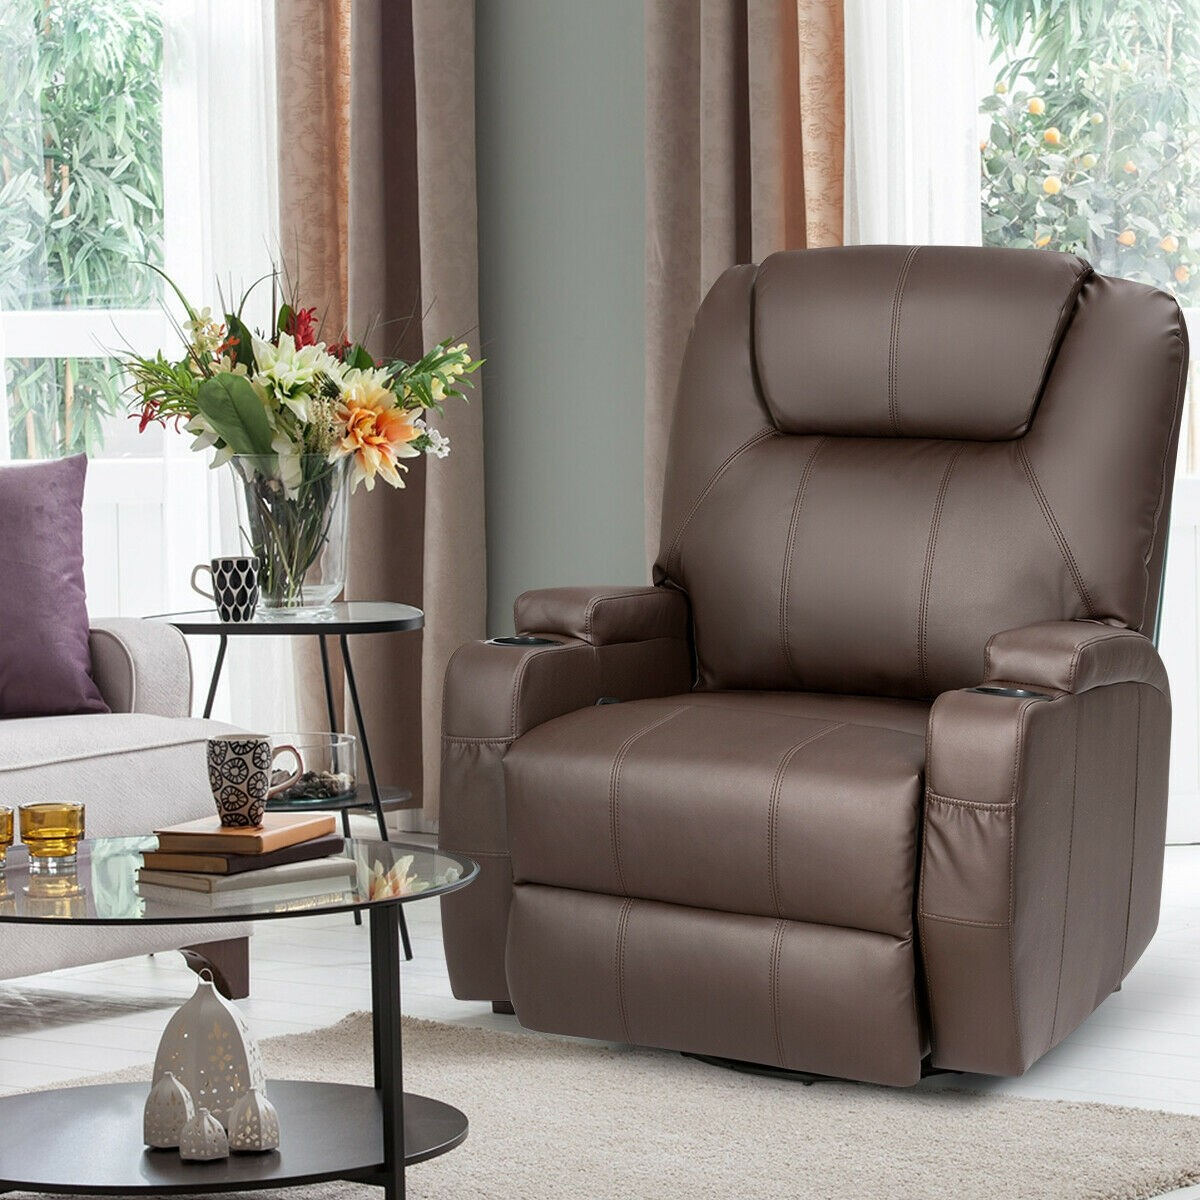 Details About Vibrating Recliner Heated Body Massage Chair Leather Lounge 360 Swivel Rocking